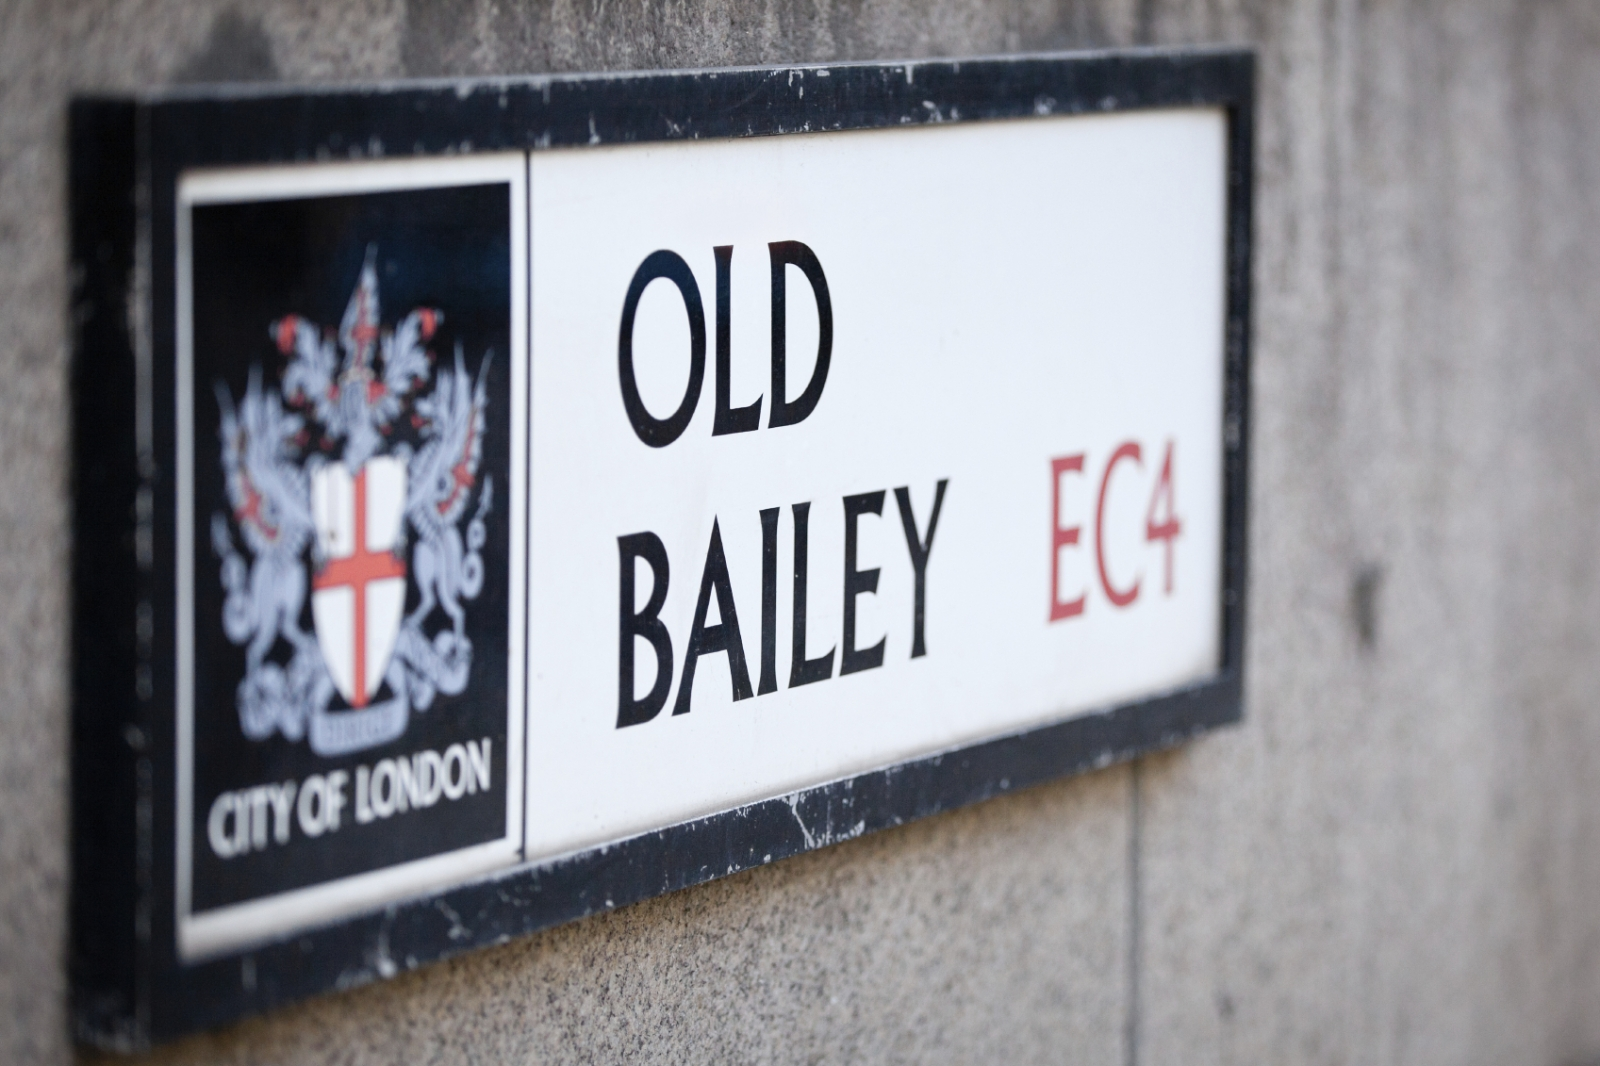 Old Bailey Sign, court law justice crime